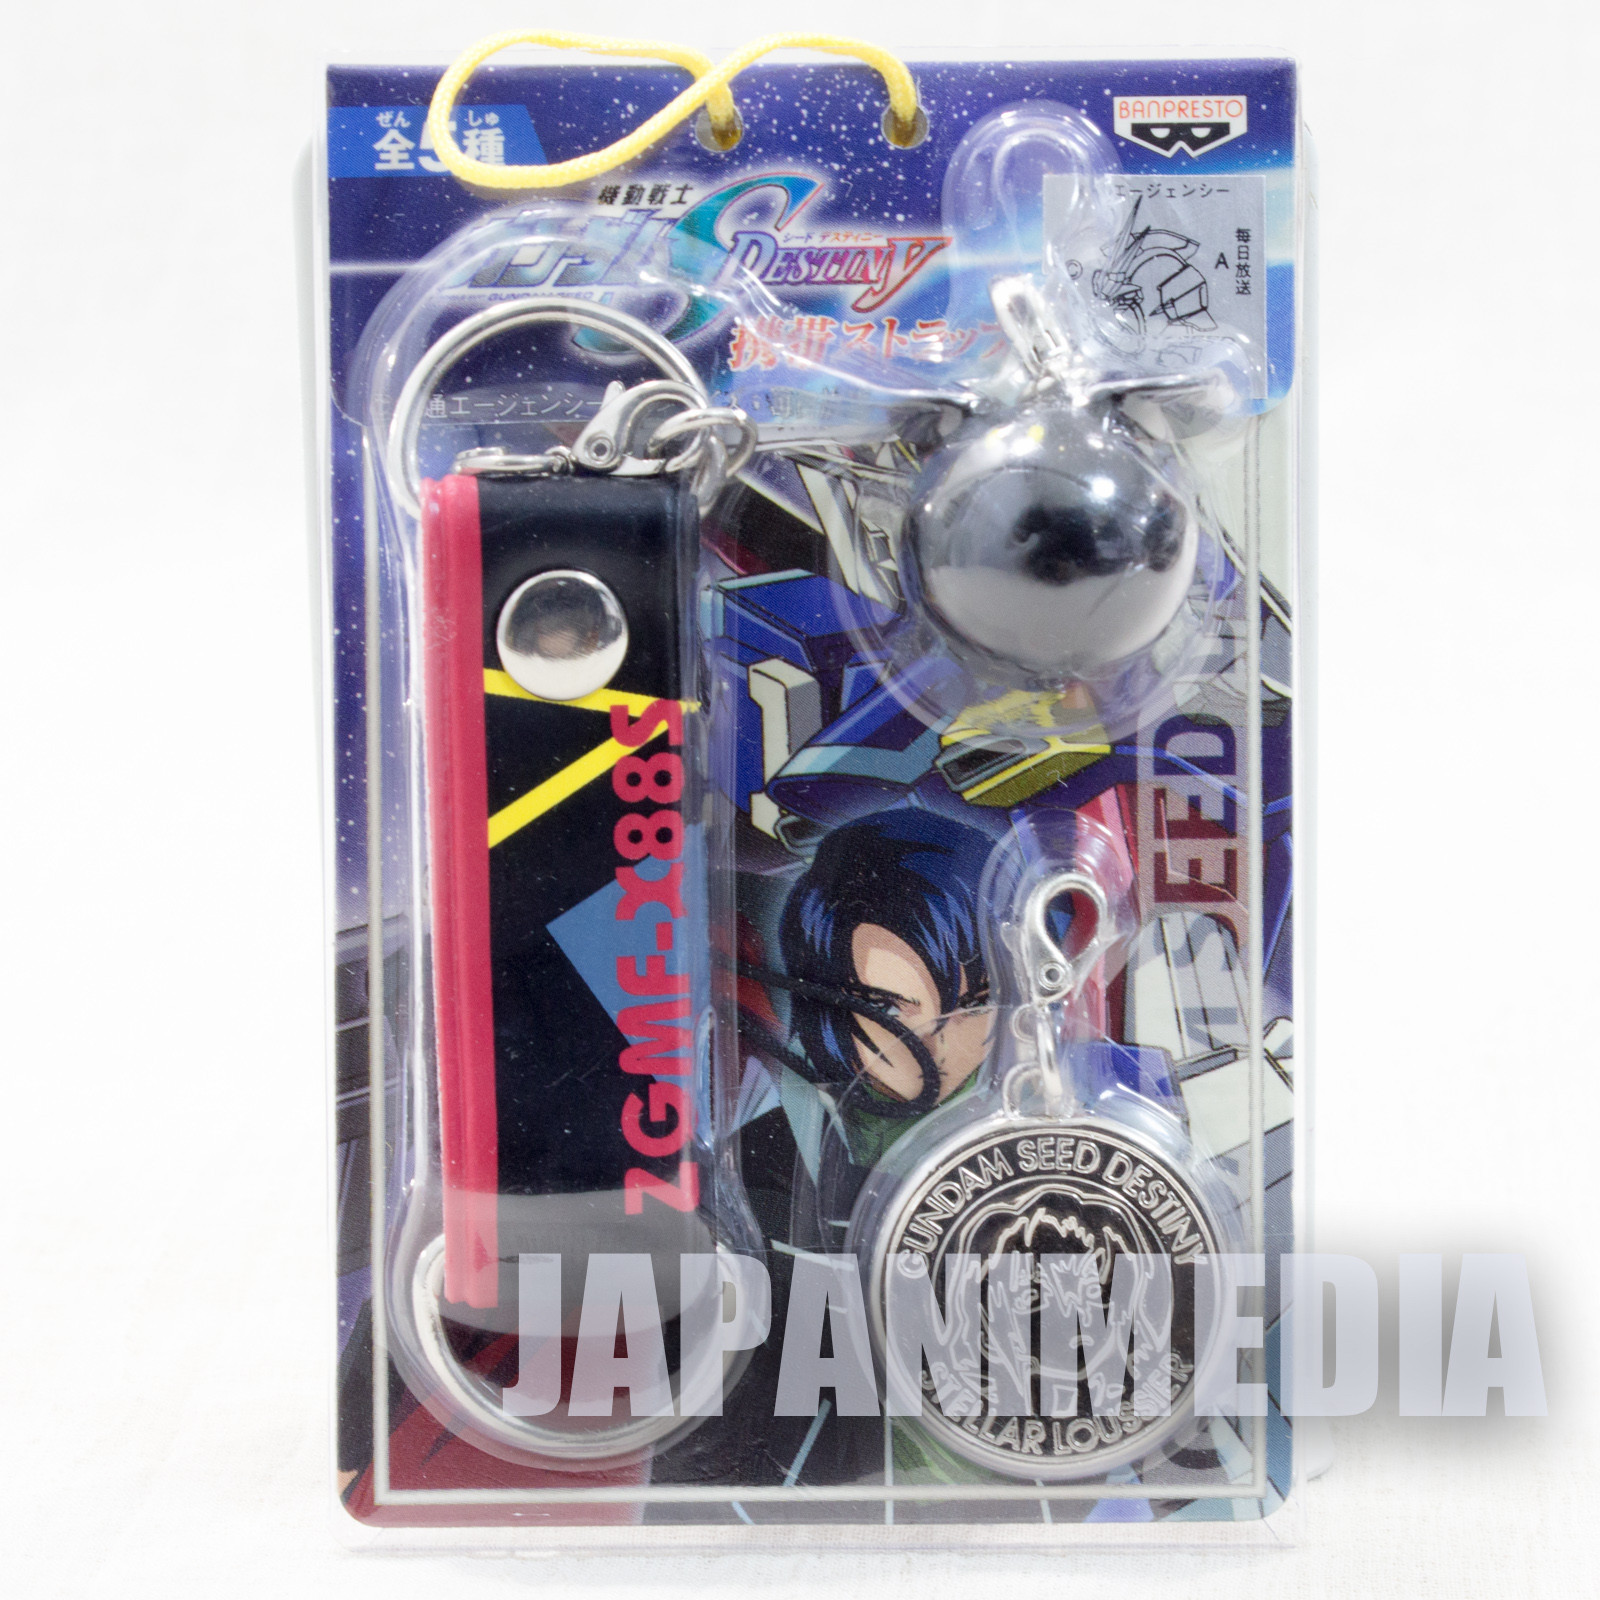 Gundam SEED Destiny Haro (Black) Figure Mascot strap with Stella Loussier Charm JAPAN ANIME